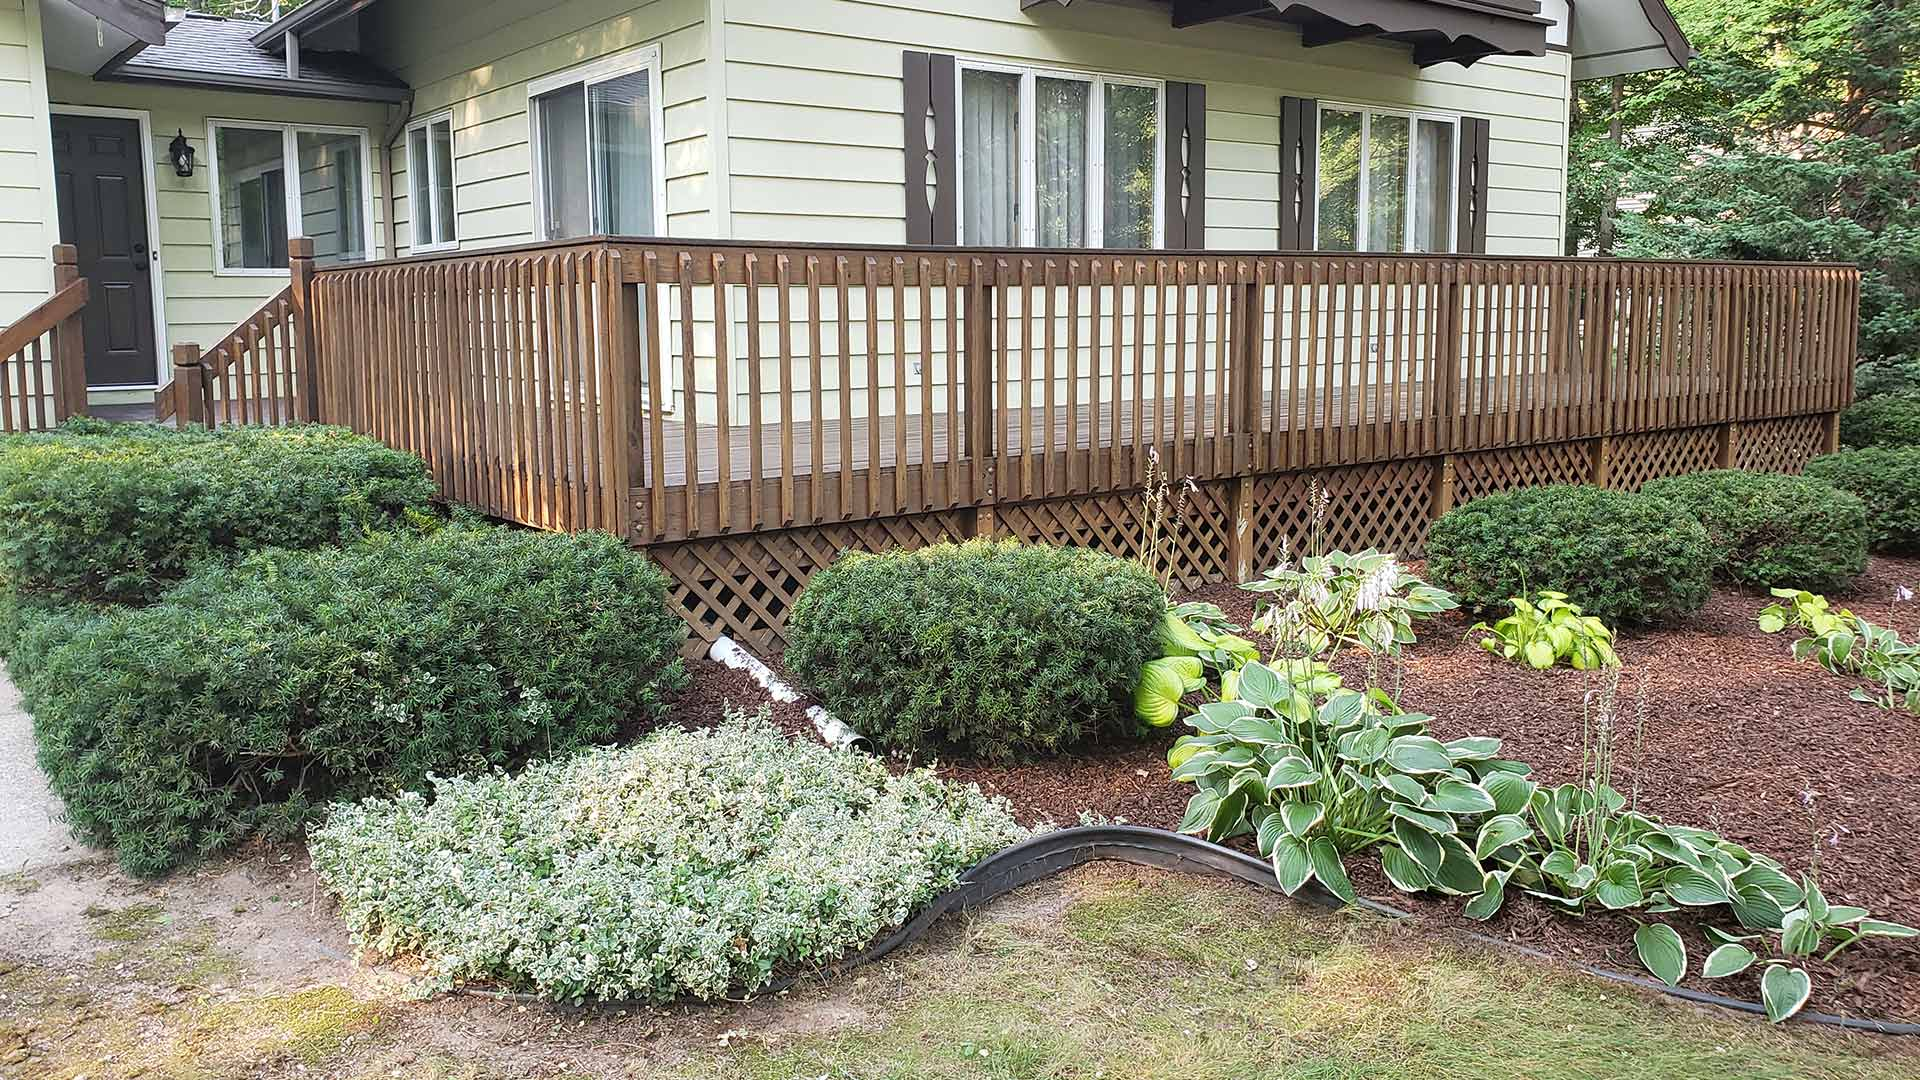 Neatly trimmed bushes in landscape beds.